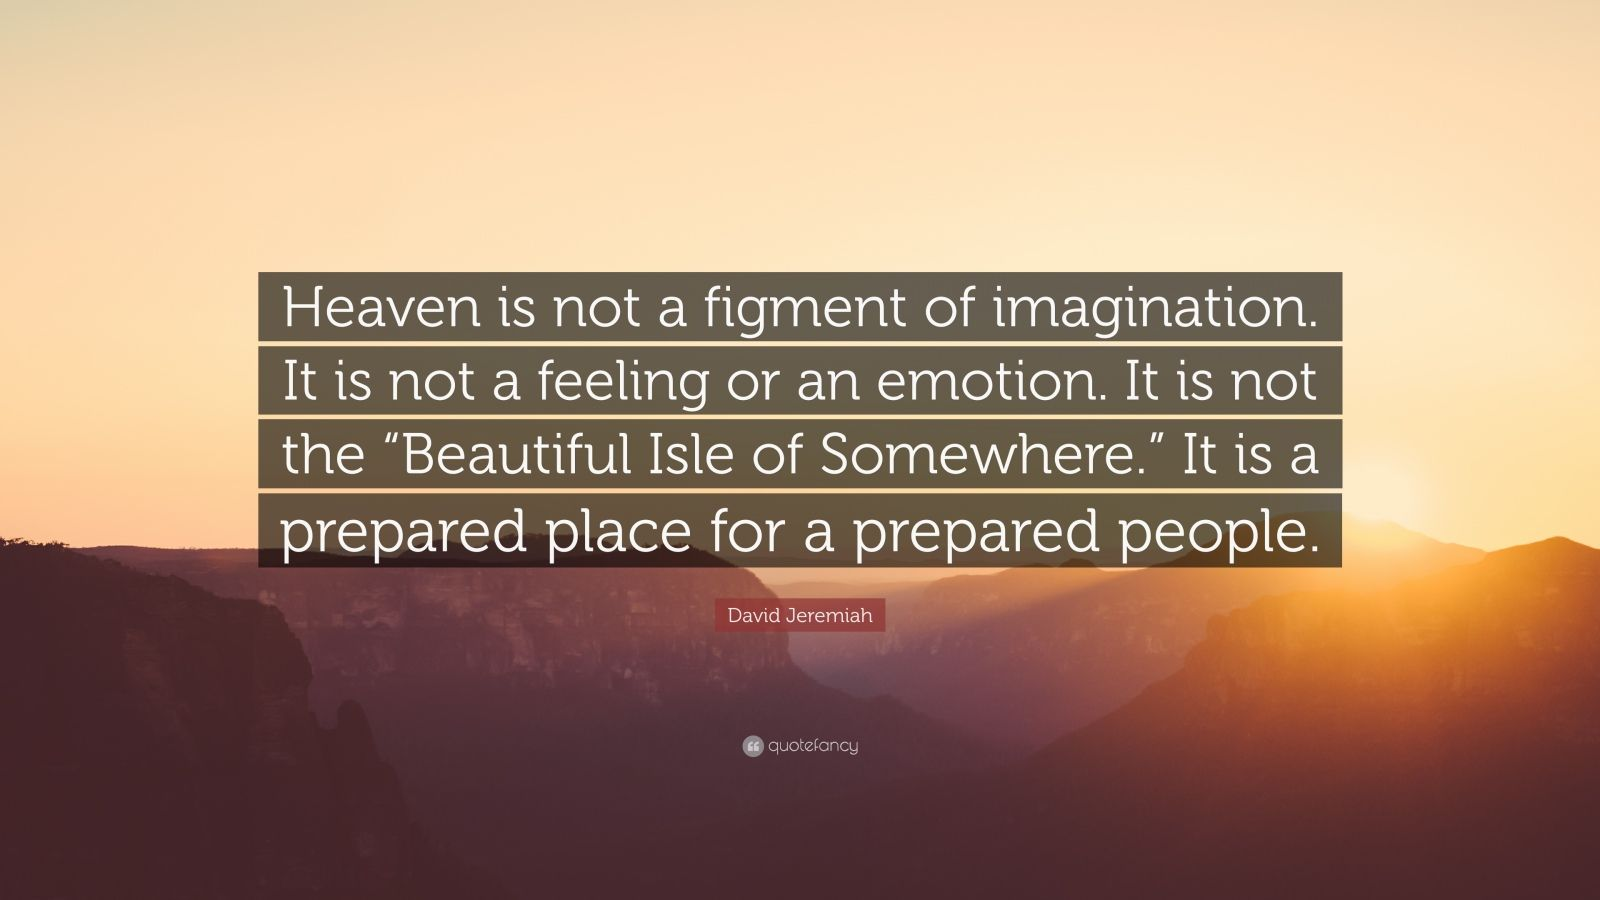 David Jeremiah Quote Heaven Is Not A Figment Of Imagination It Is Not A Feeling Or An Emotion